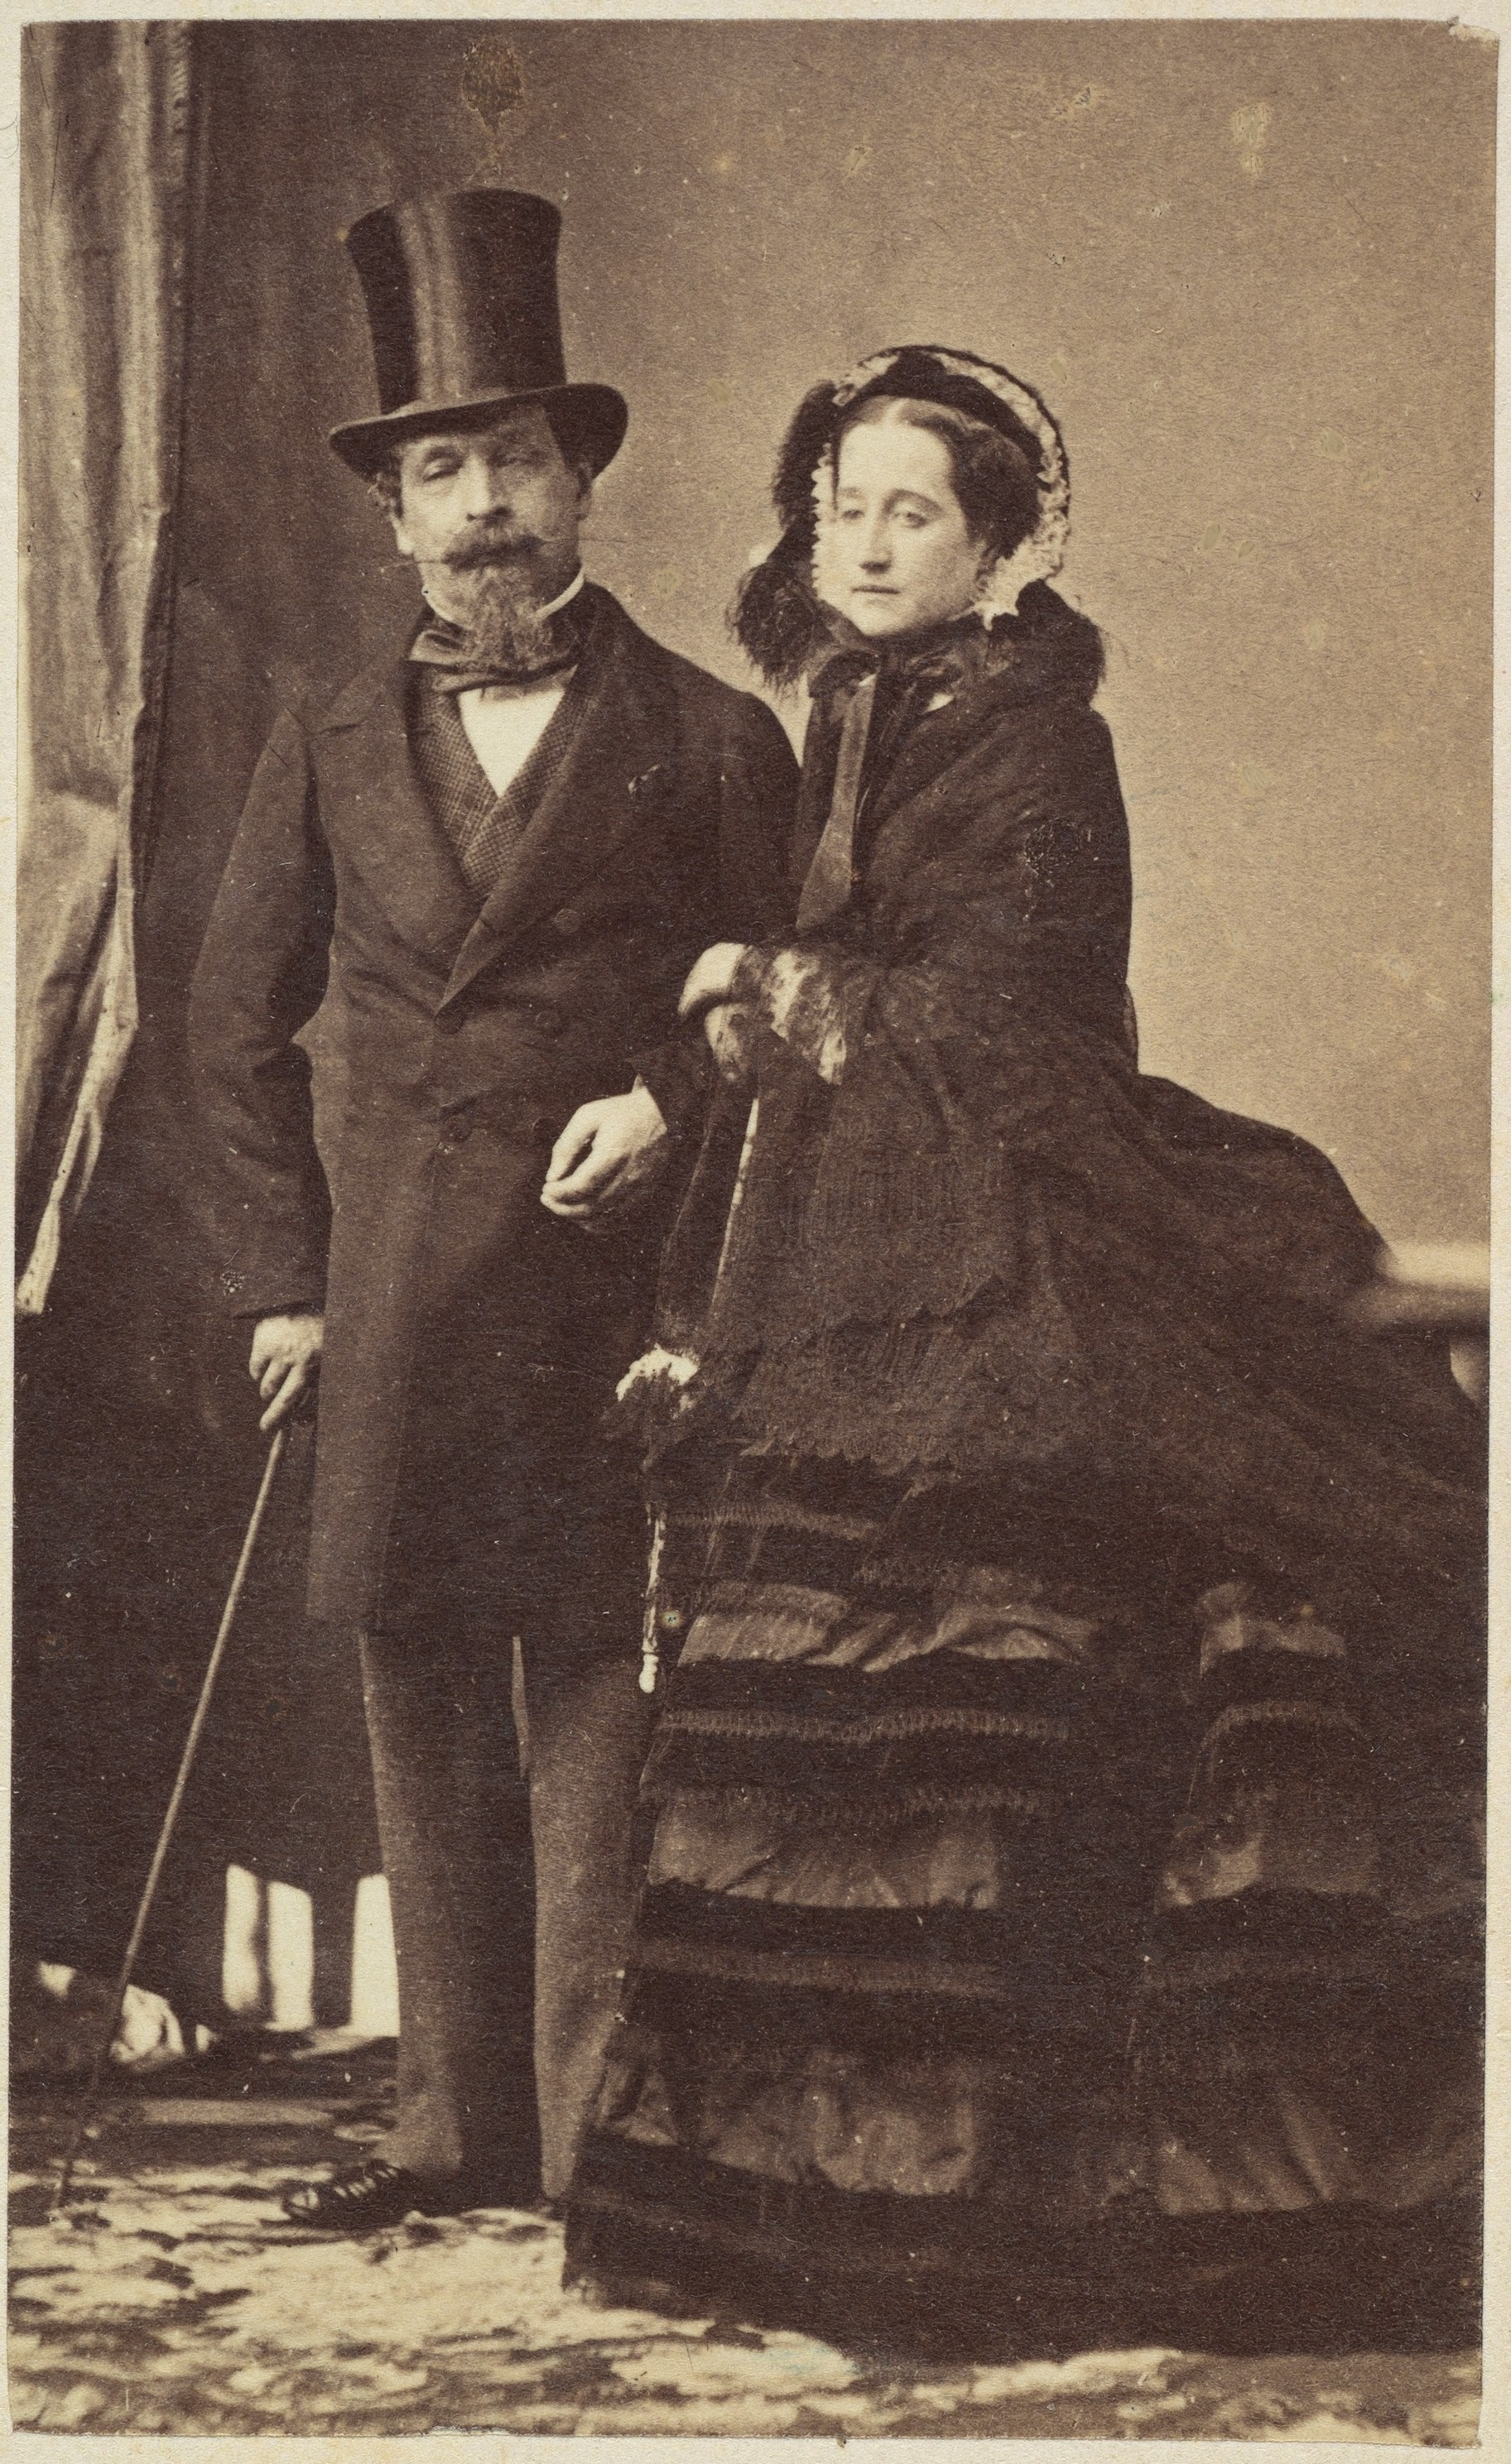 Disderi%2C_Adolphe_Eug%C3%A8ne_(1819-1890)_-_French_emperor_Napol%C3%A9on_III_and_his_wife_Eugenie_-_1865.jpg